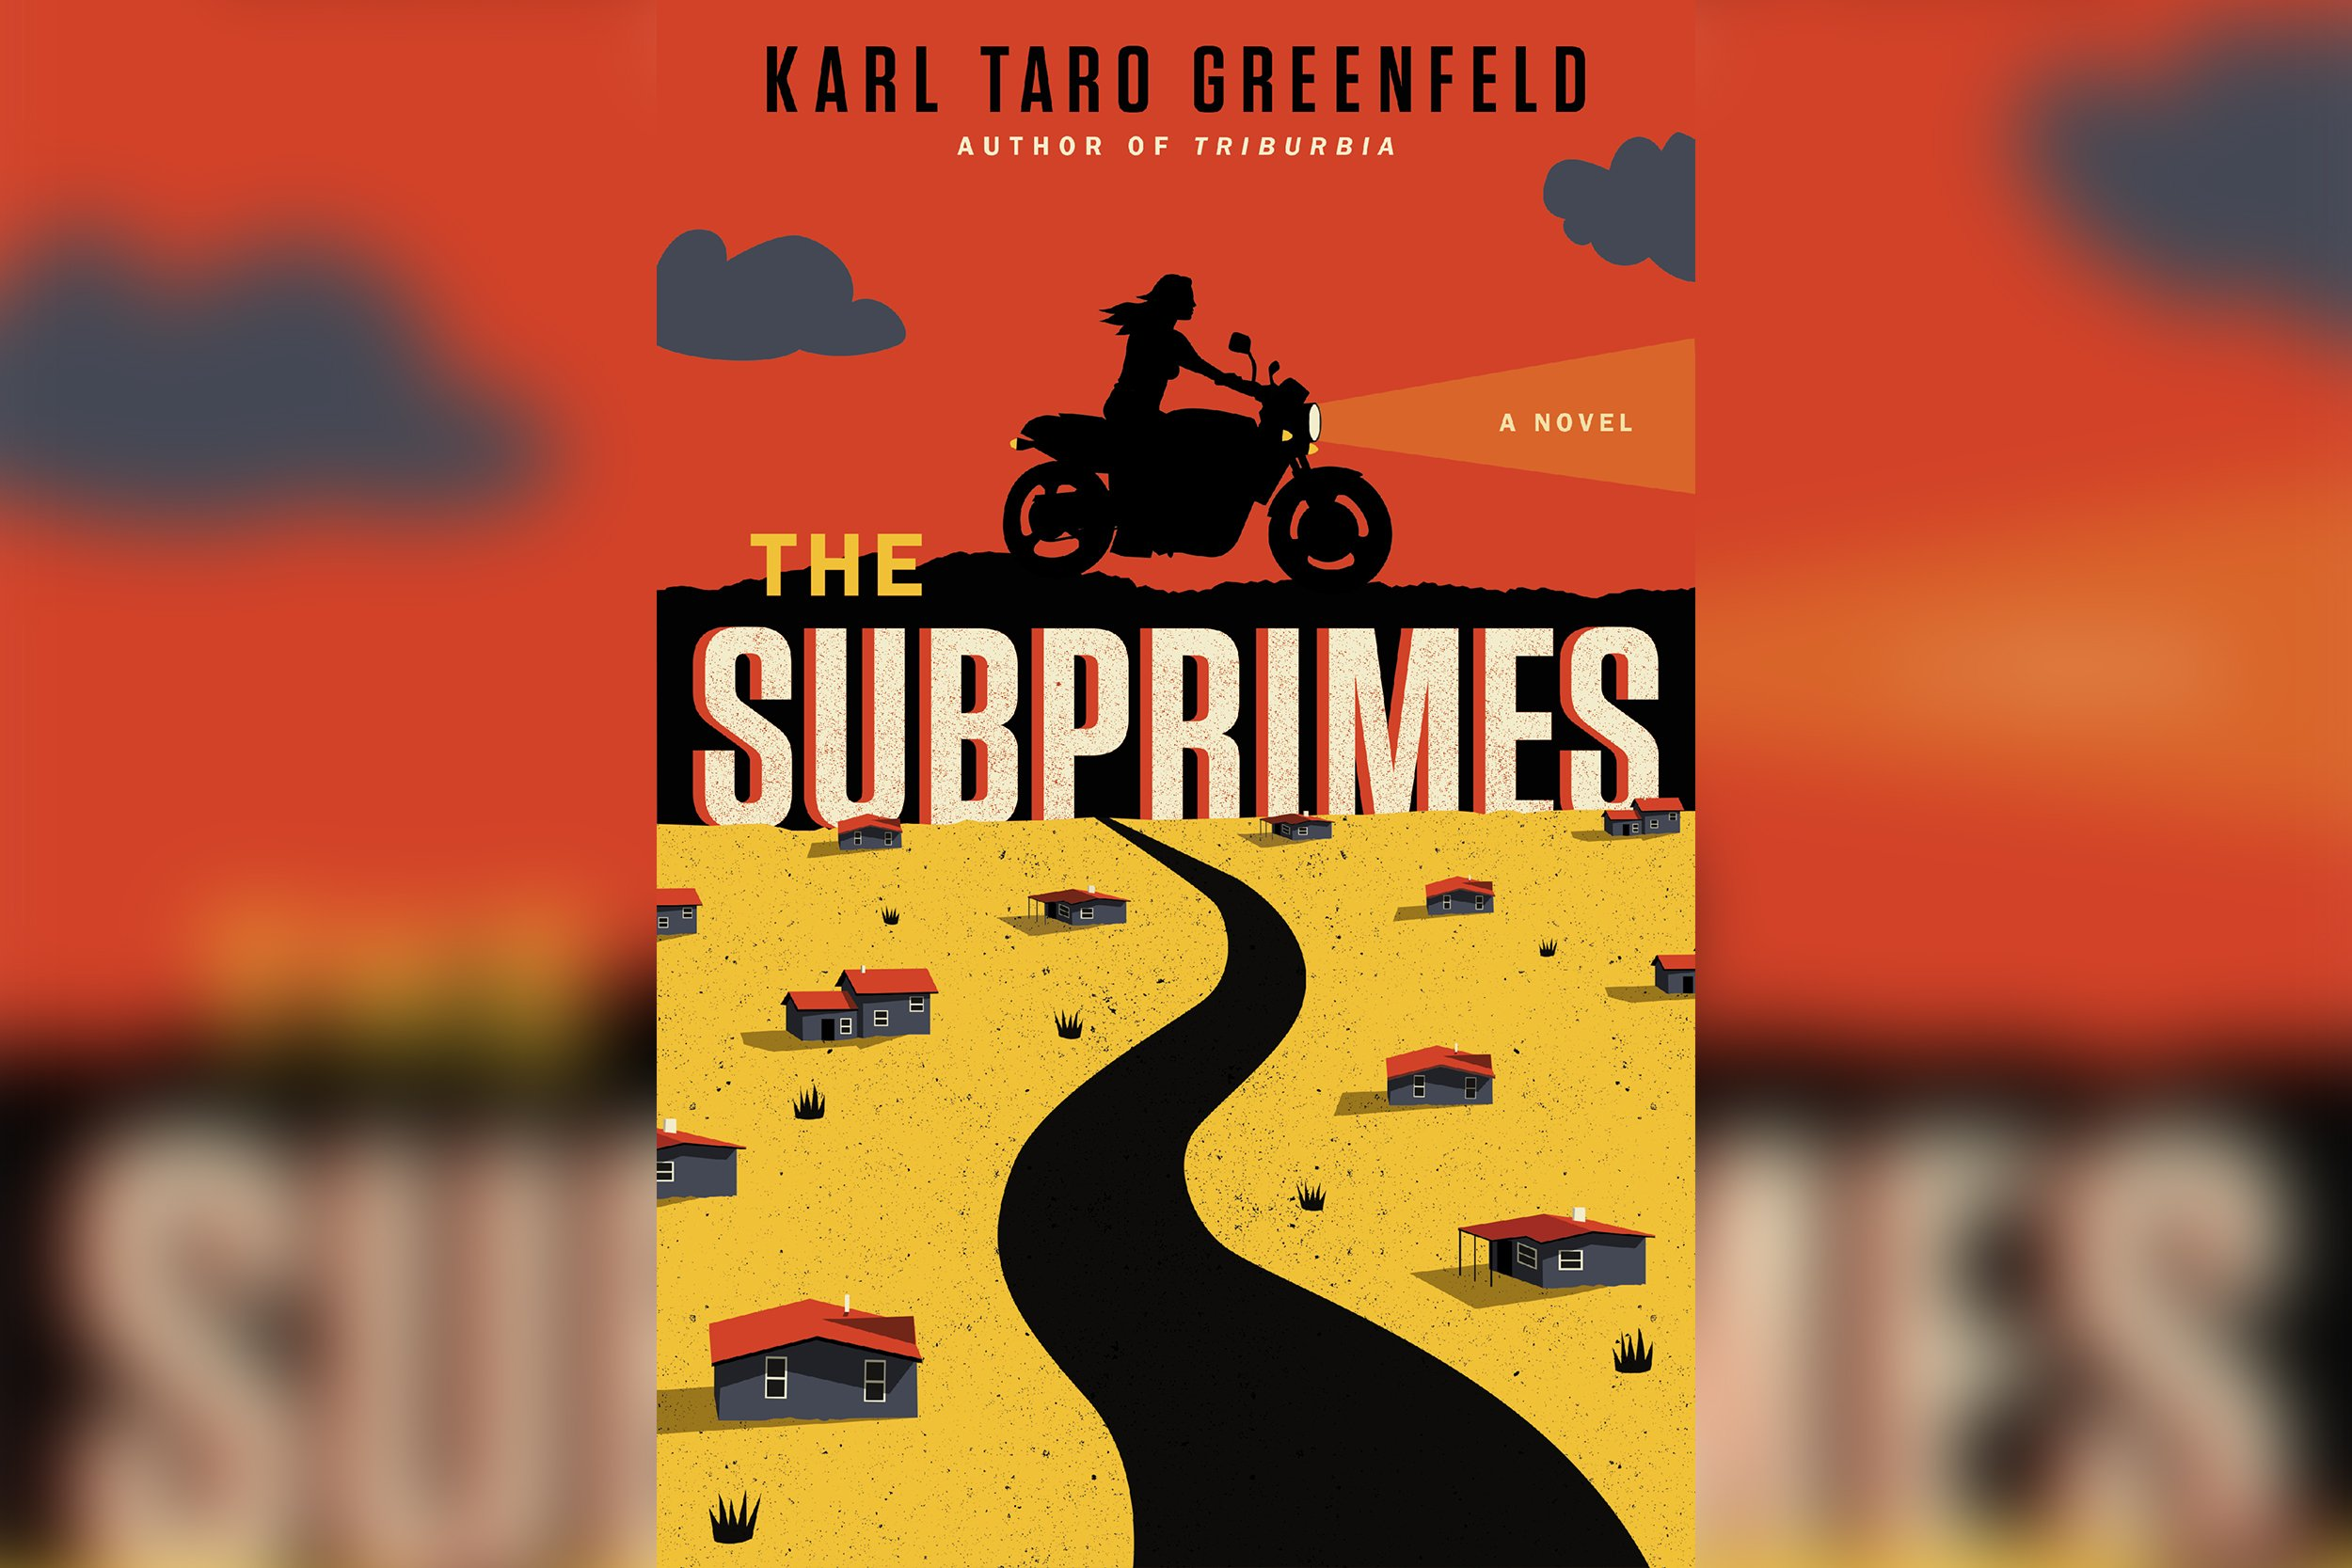 05_19_TheSubprimes_01